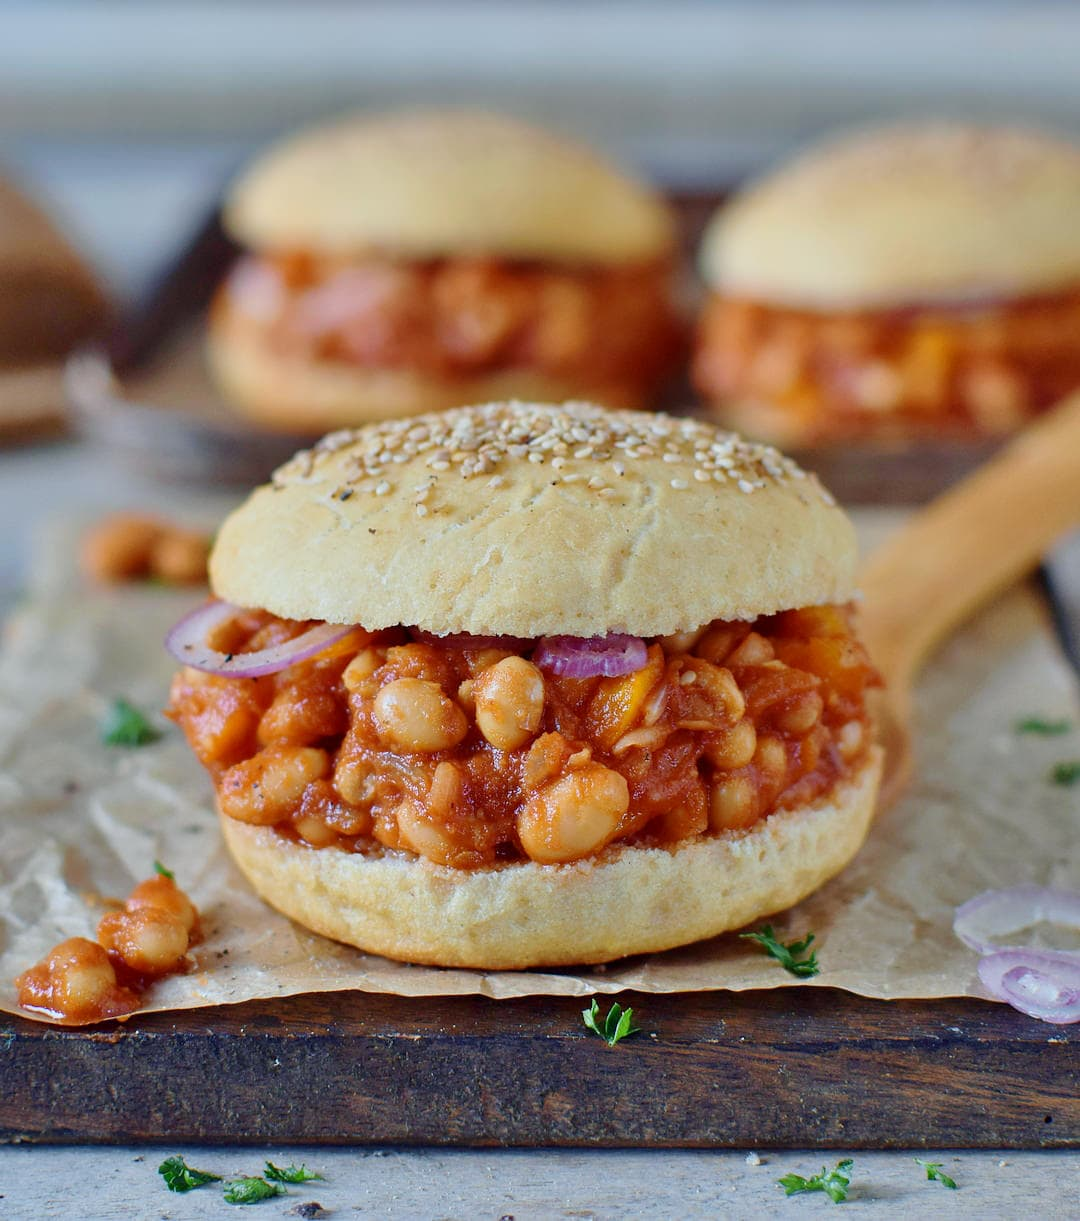 healthy vegan sloppy joes recipe with gluten-free burger buns